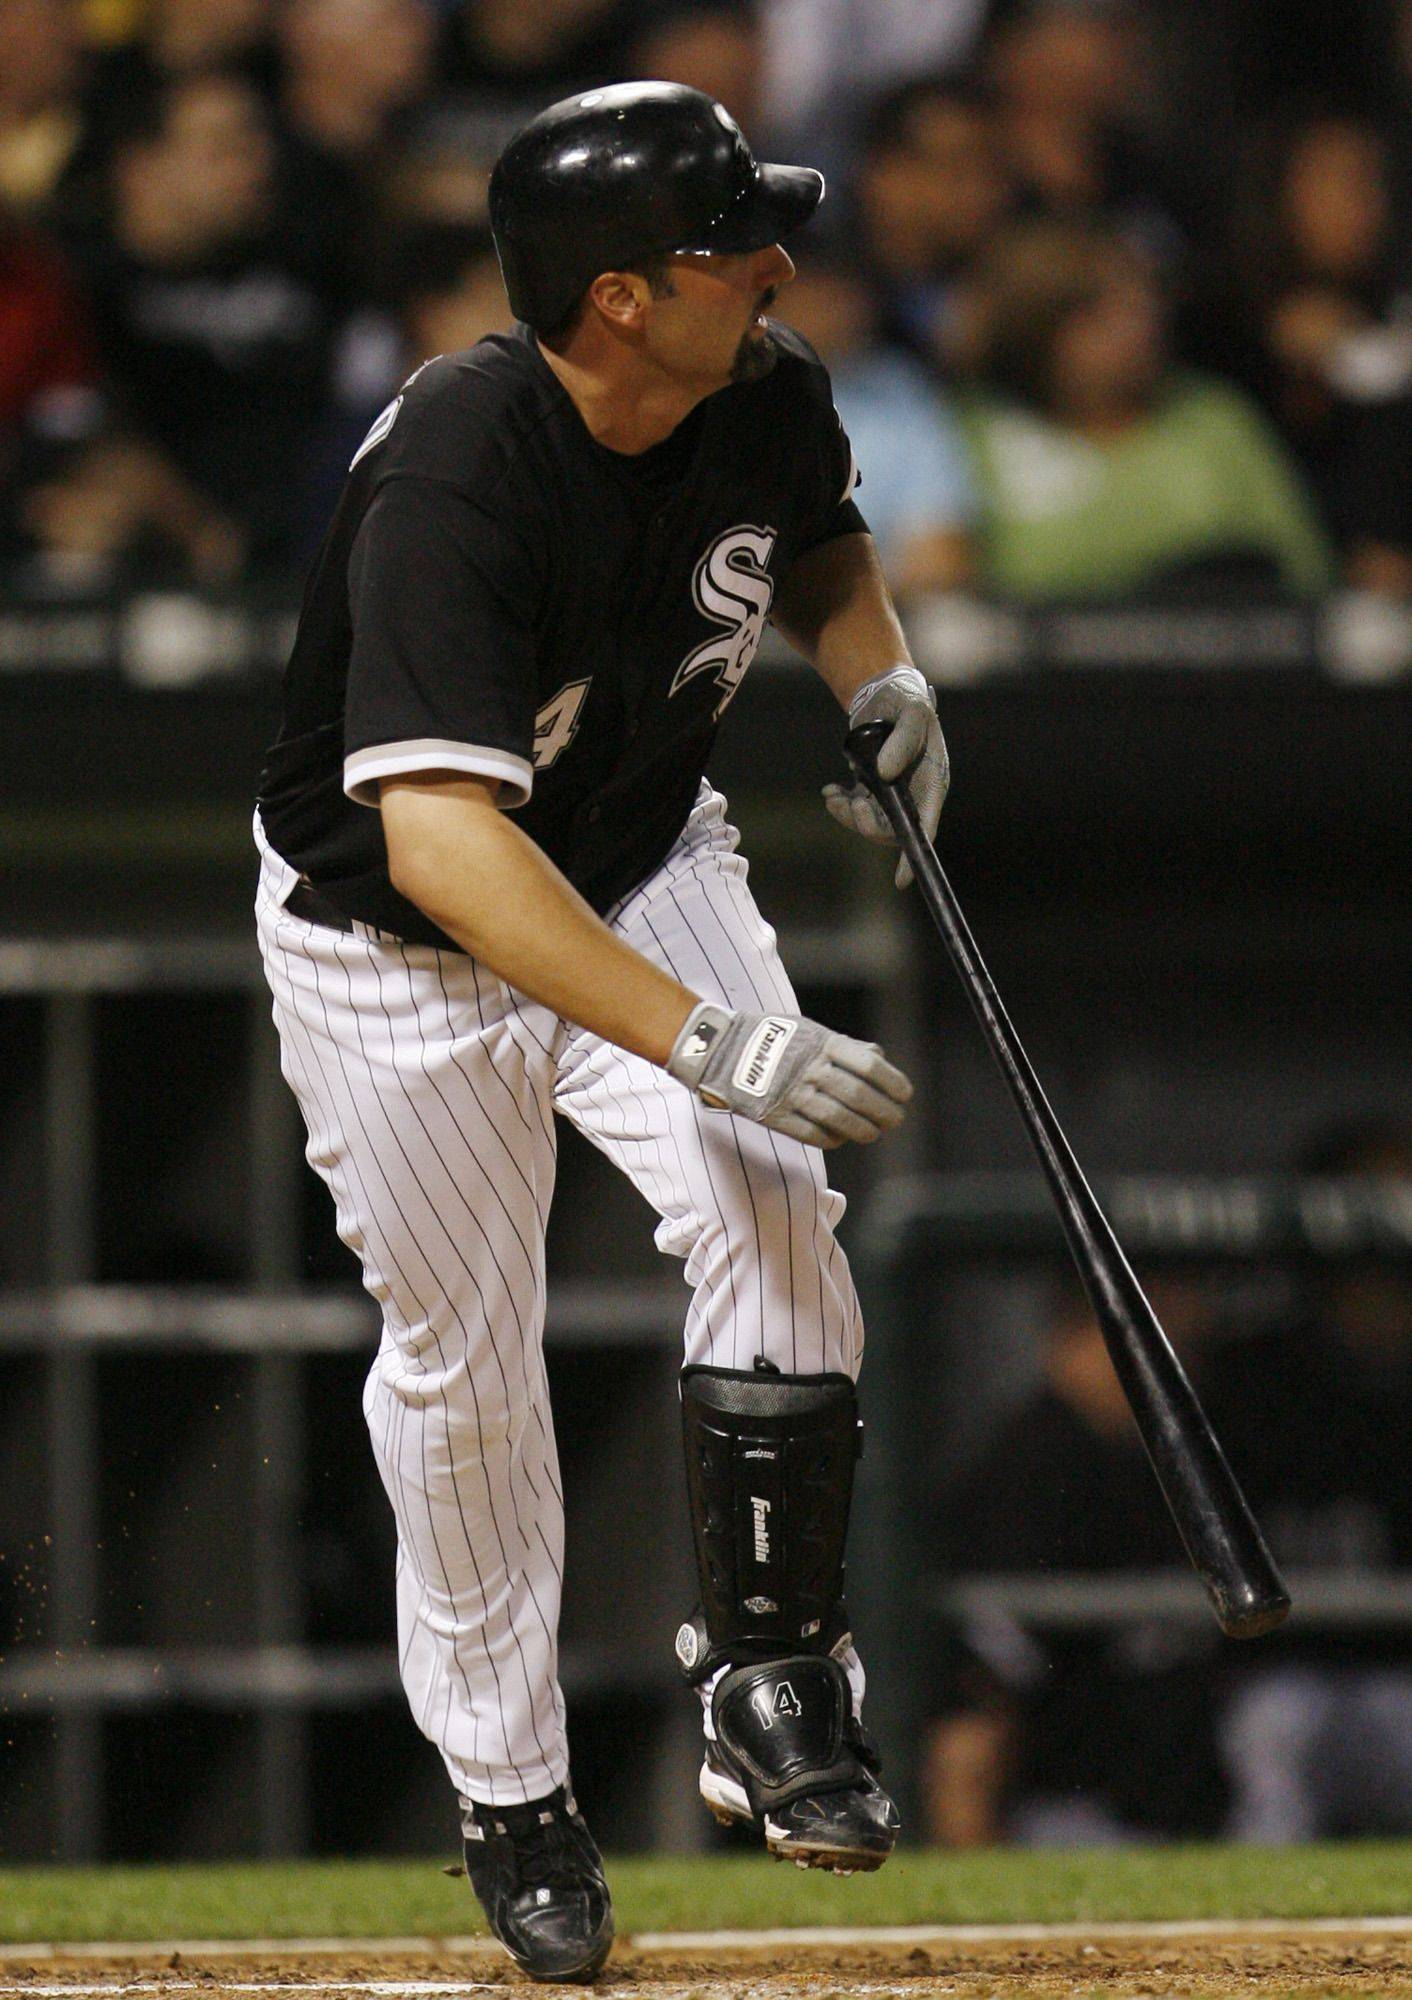 Hopes dim for Sox, Konerko